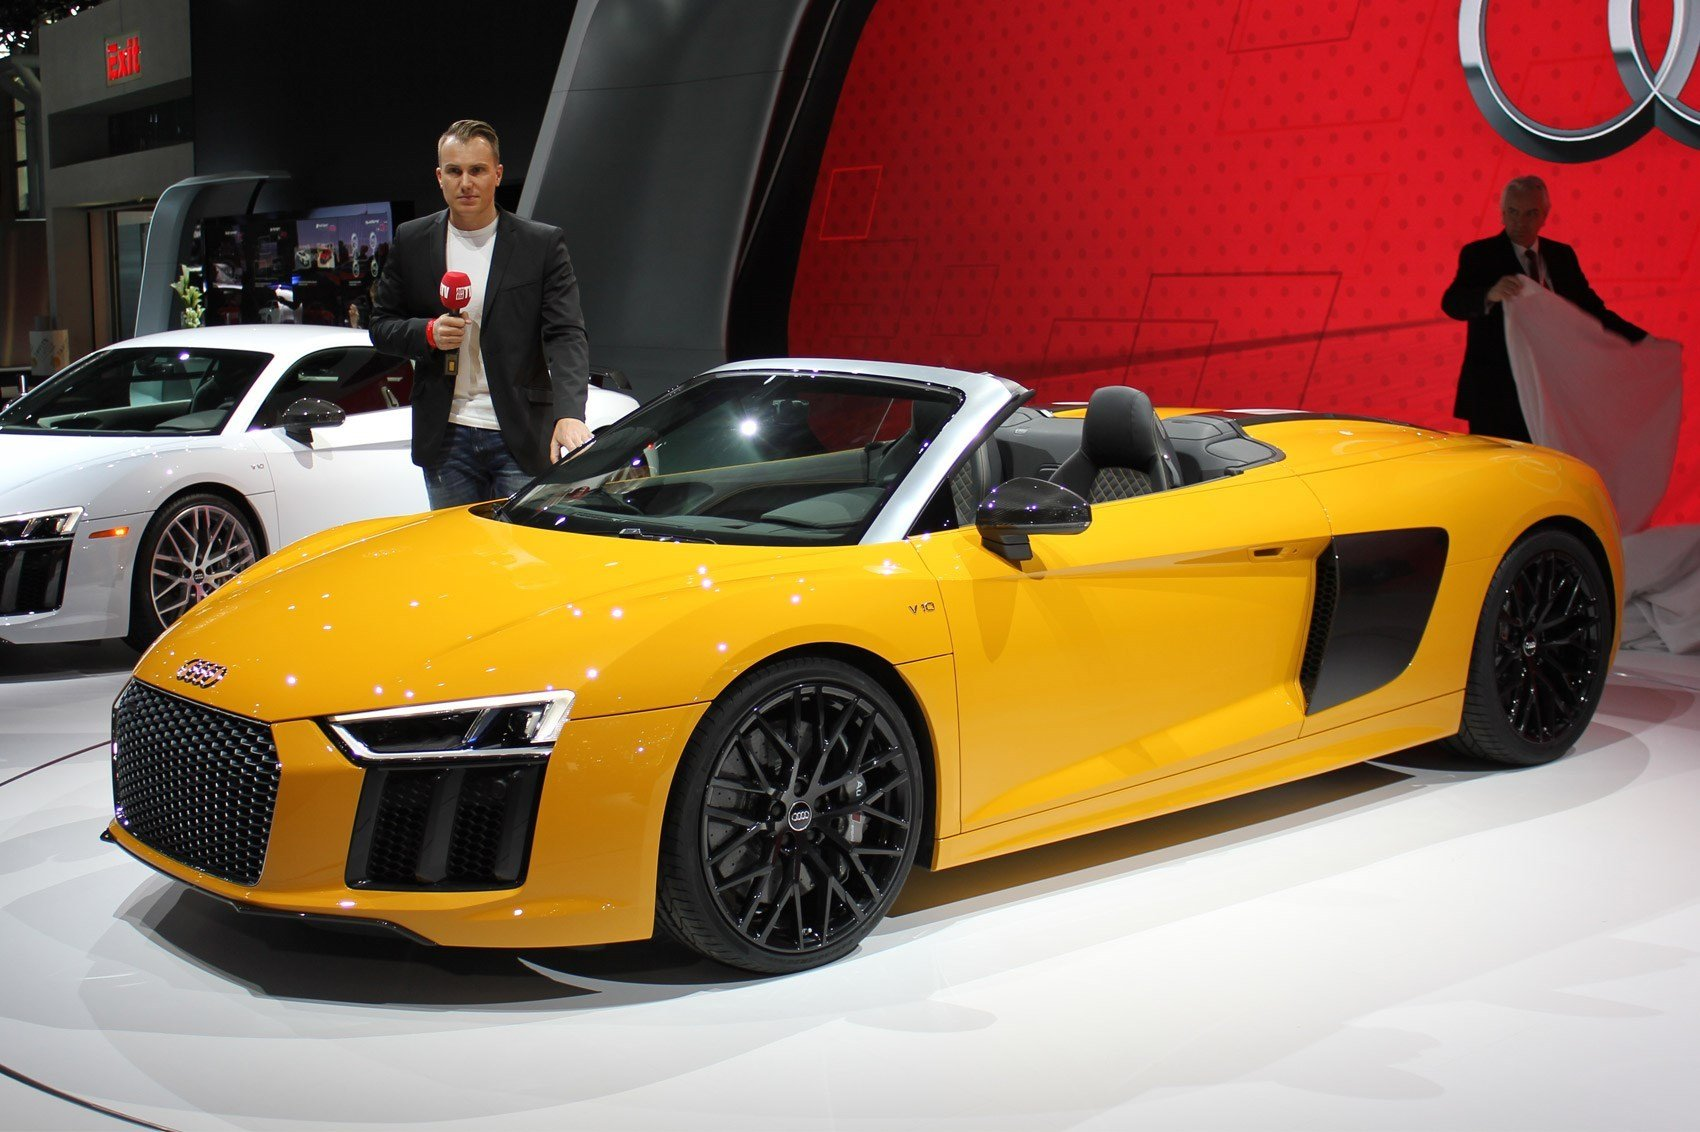 Latest New Audi R8 Spyder Revealed At 2016 New York Motor Show By Free Download